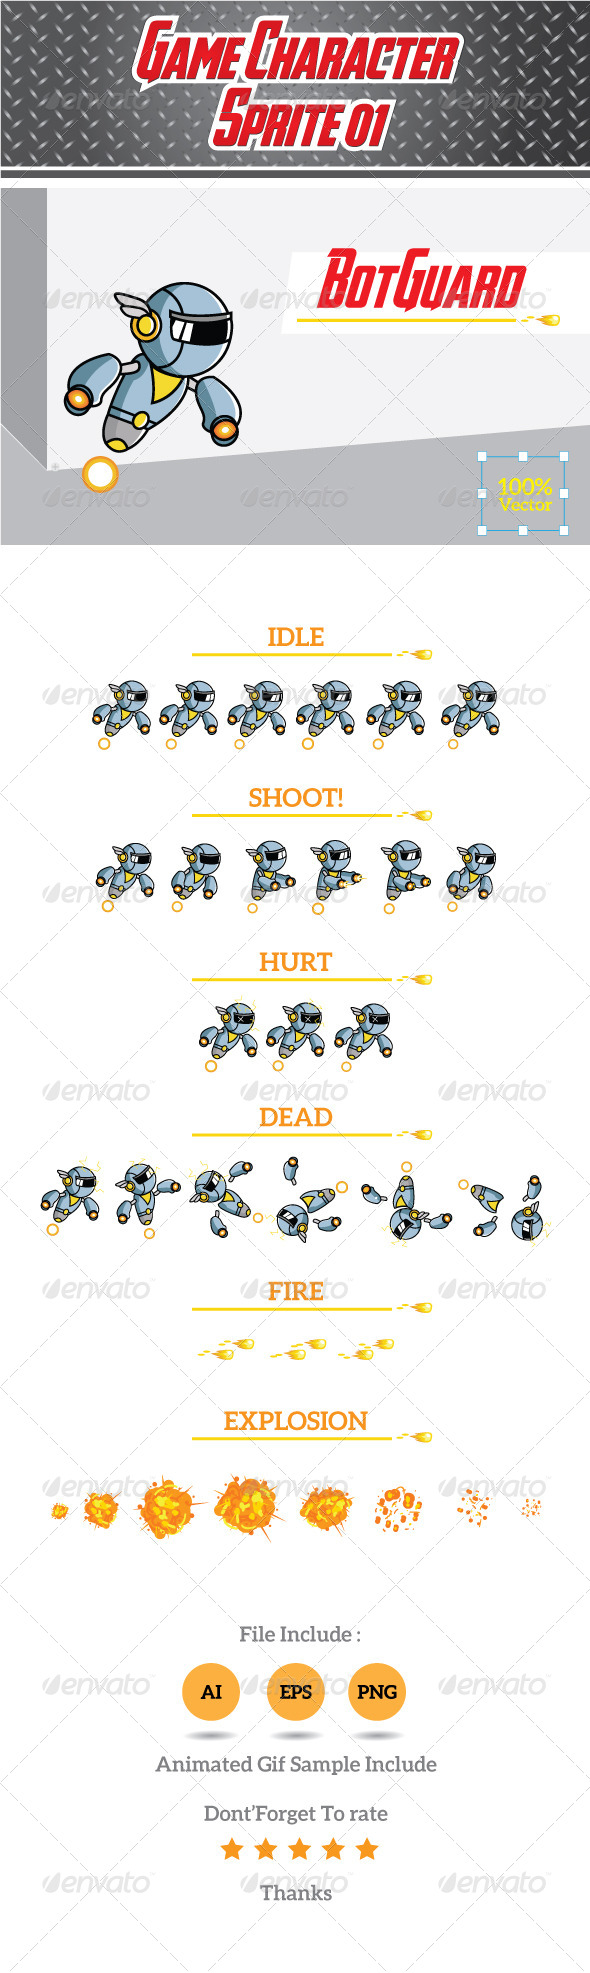 GraphicRiver Game Character Sprite 01- BotGuard 8746361